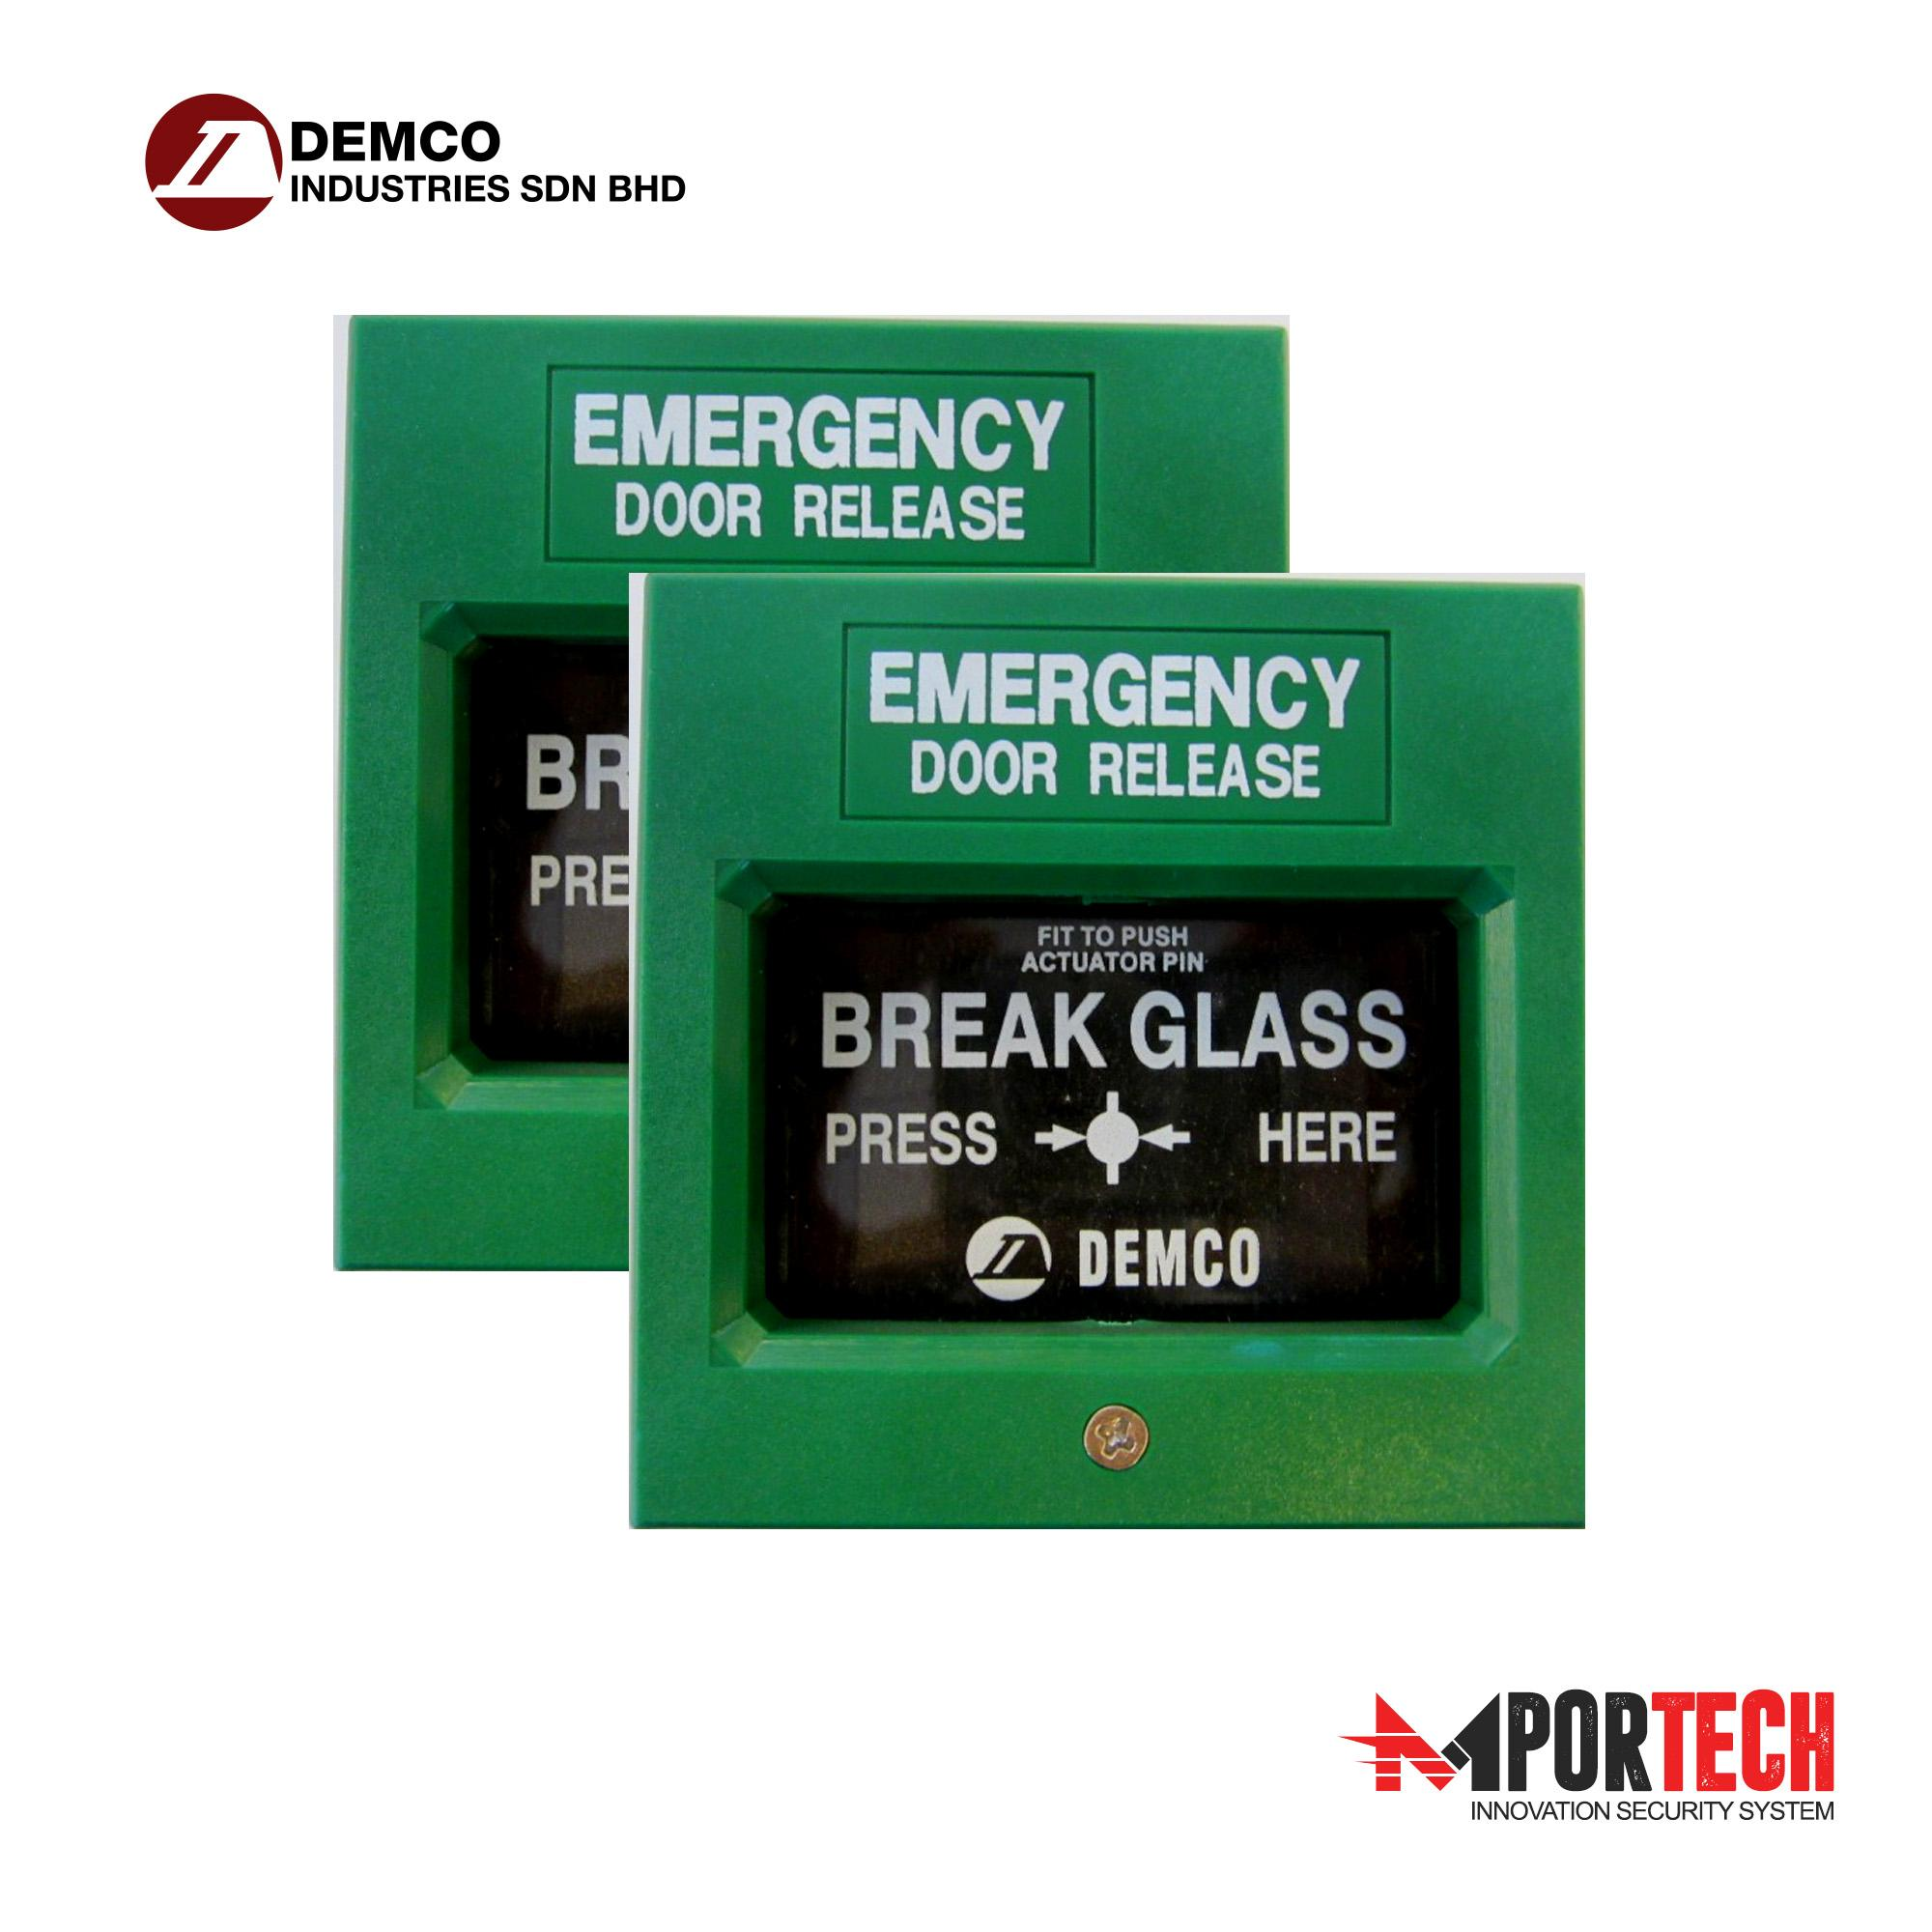 Manual Call Point Emergency Break Glass Door Release Fire Alarm Pull  Station (Green) D-108 Malaysia